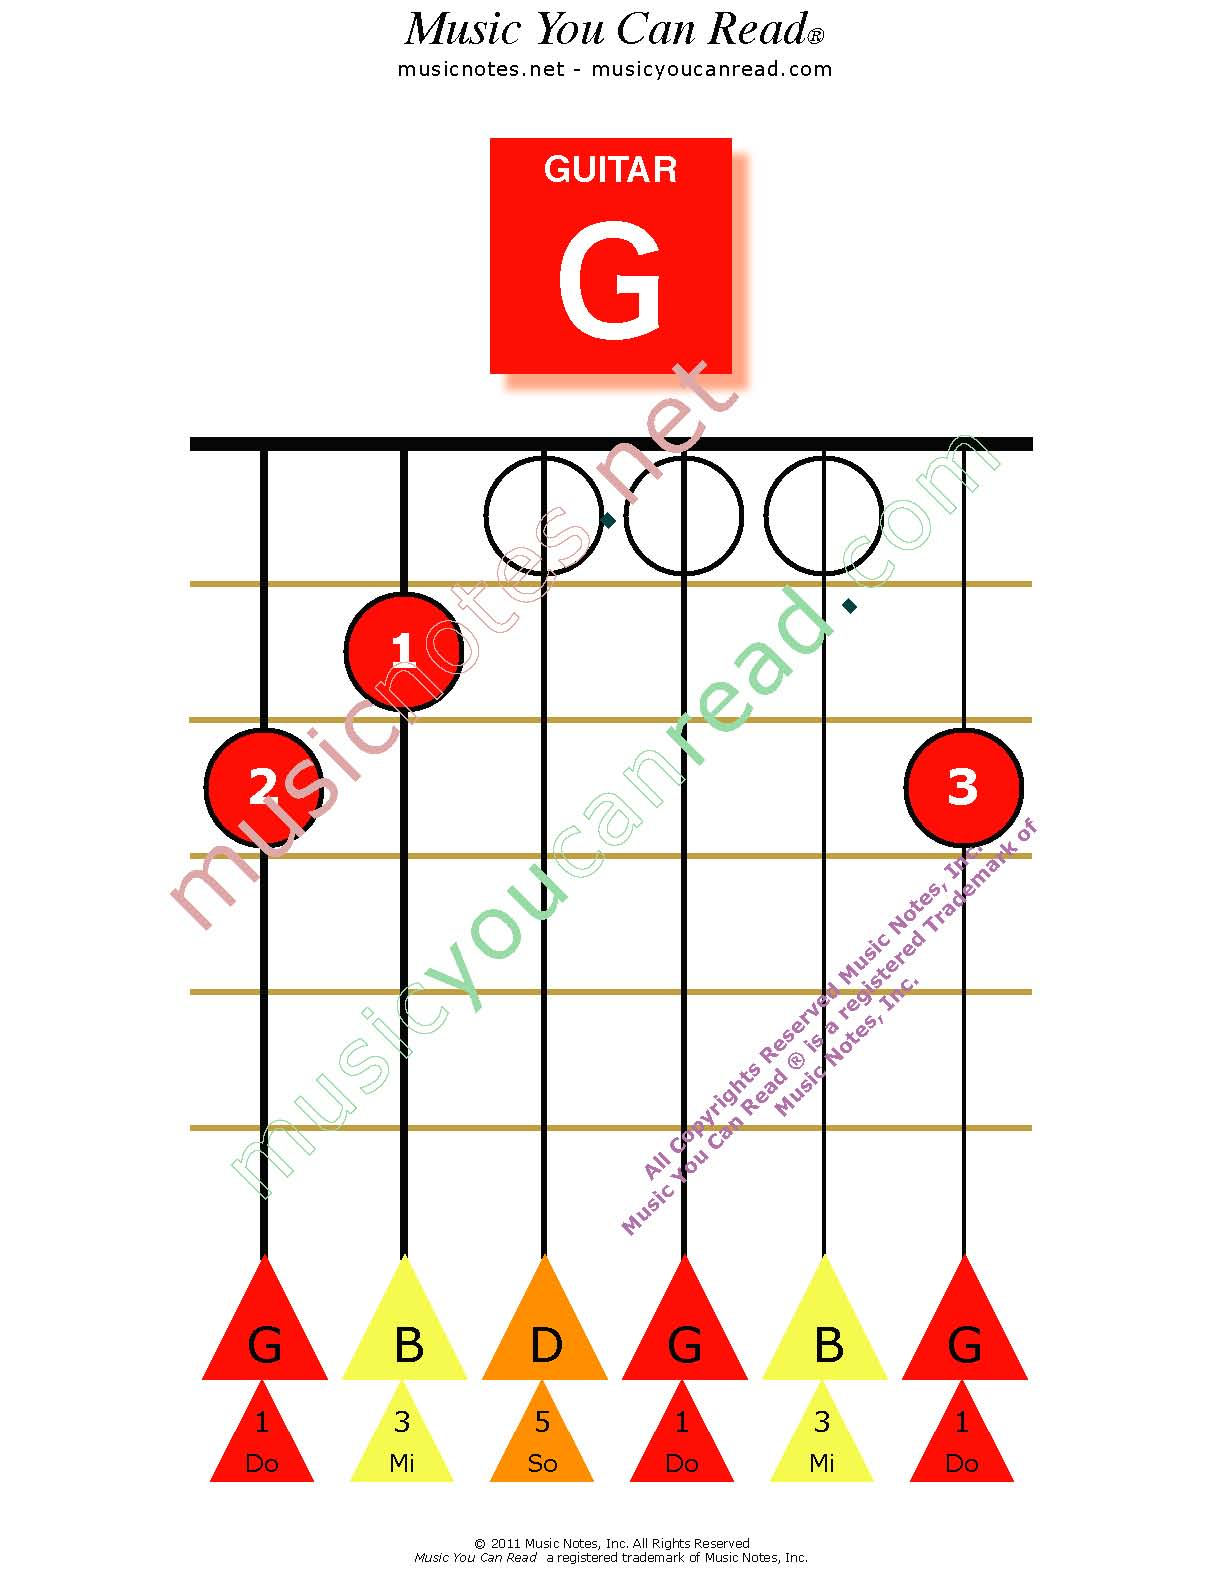 Music You Can Read Guitar Chord Chart - G